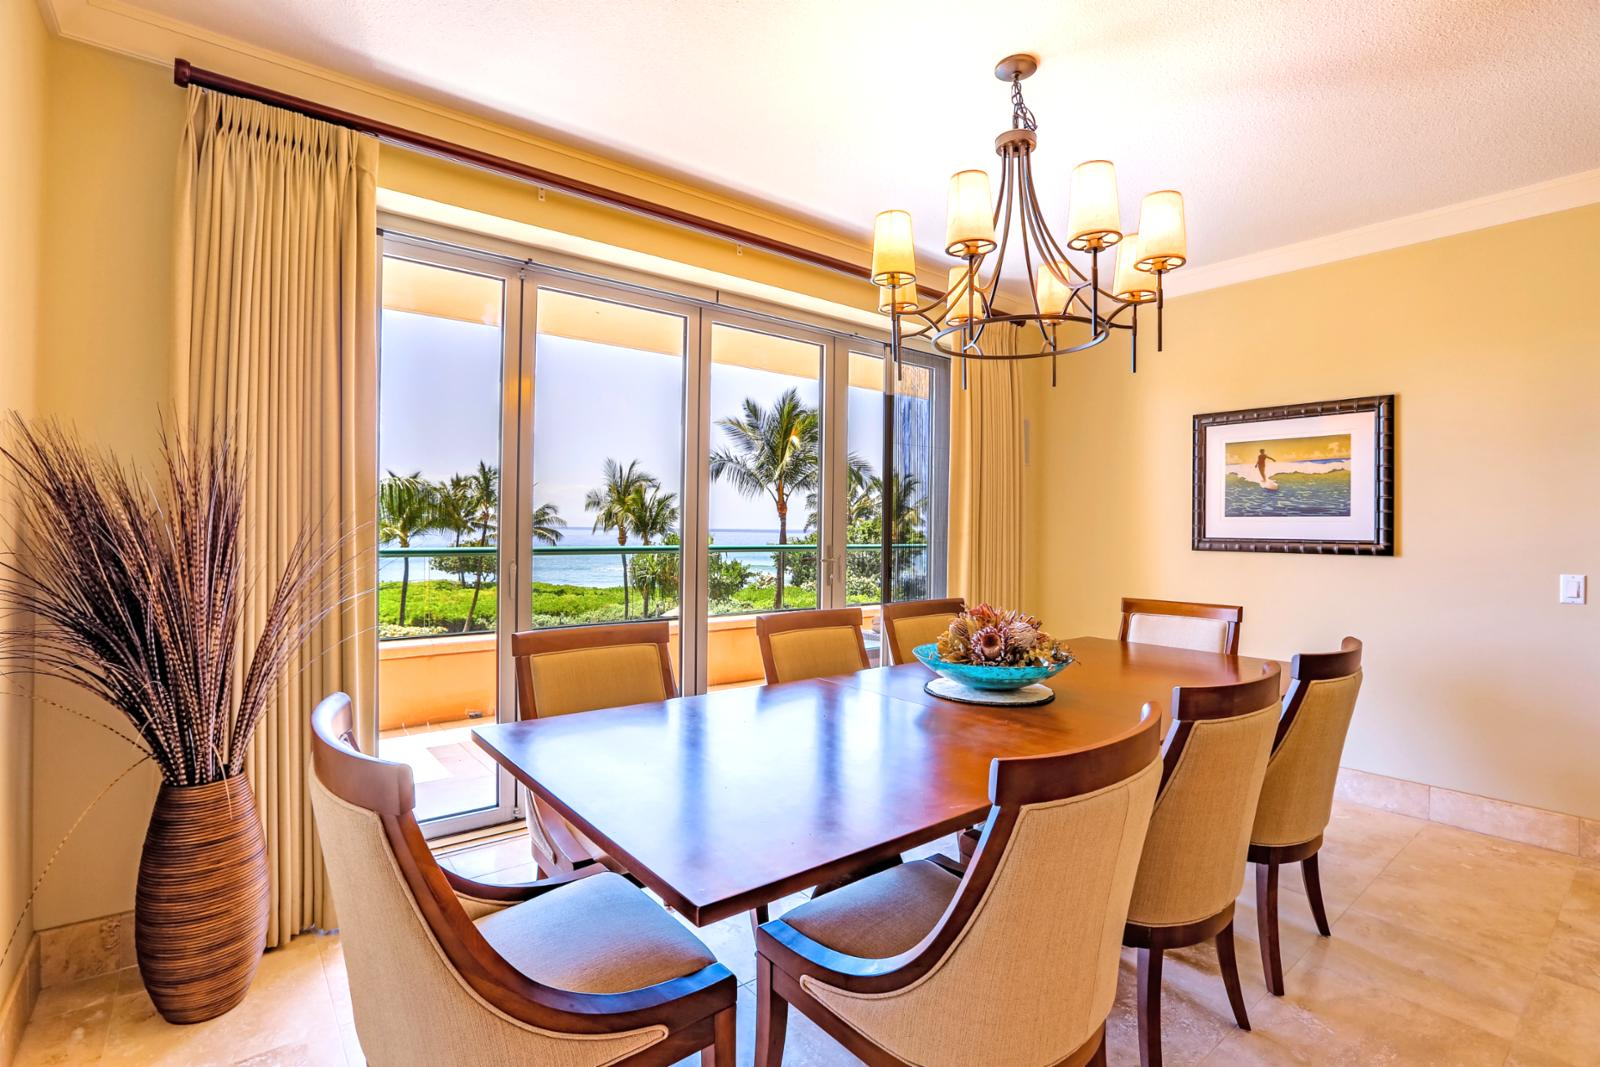 Large dining room table with a view.